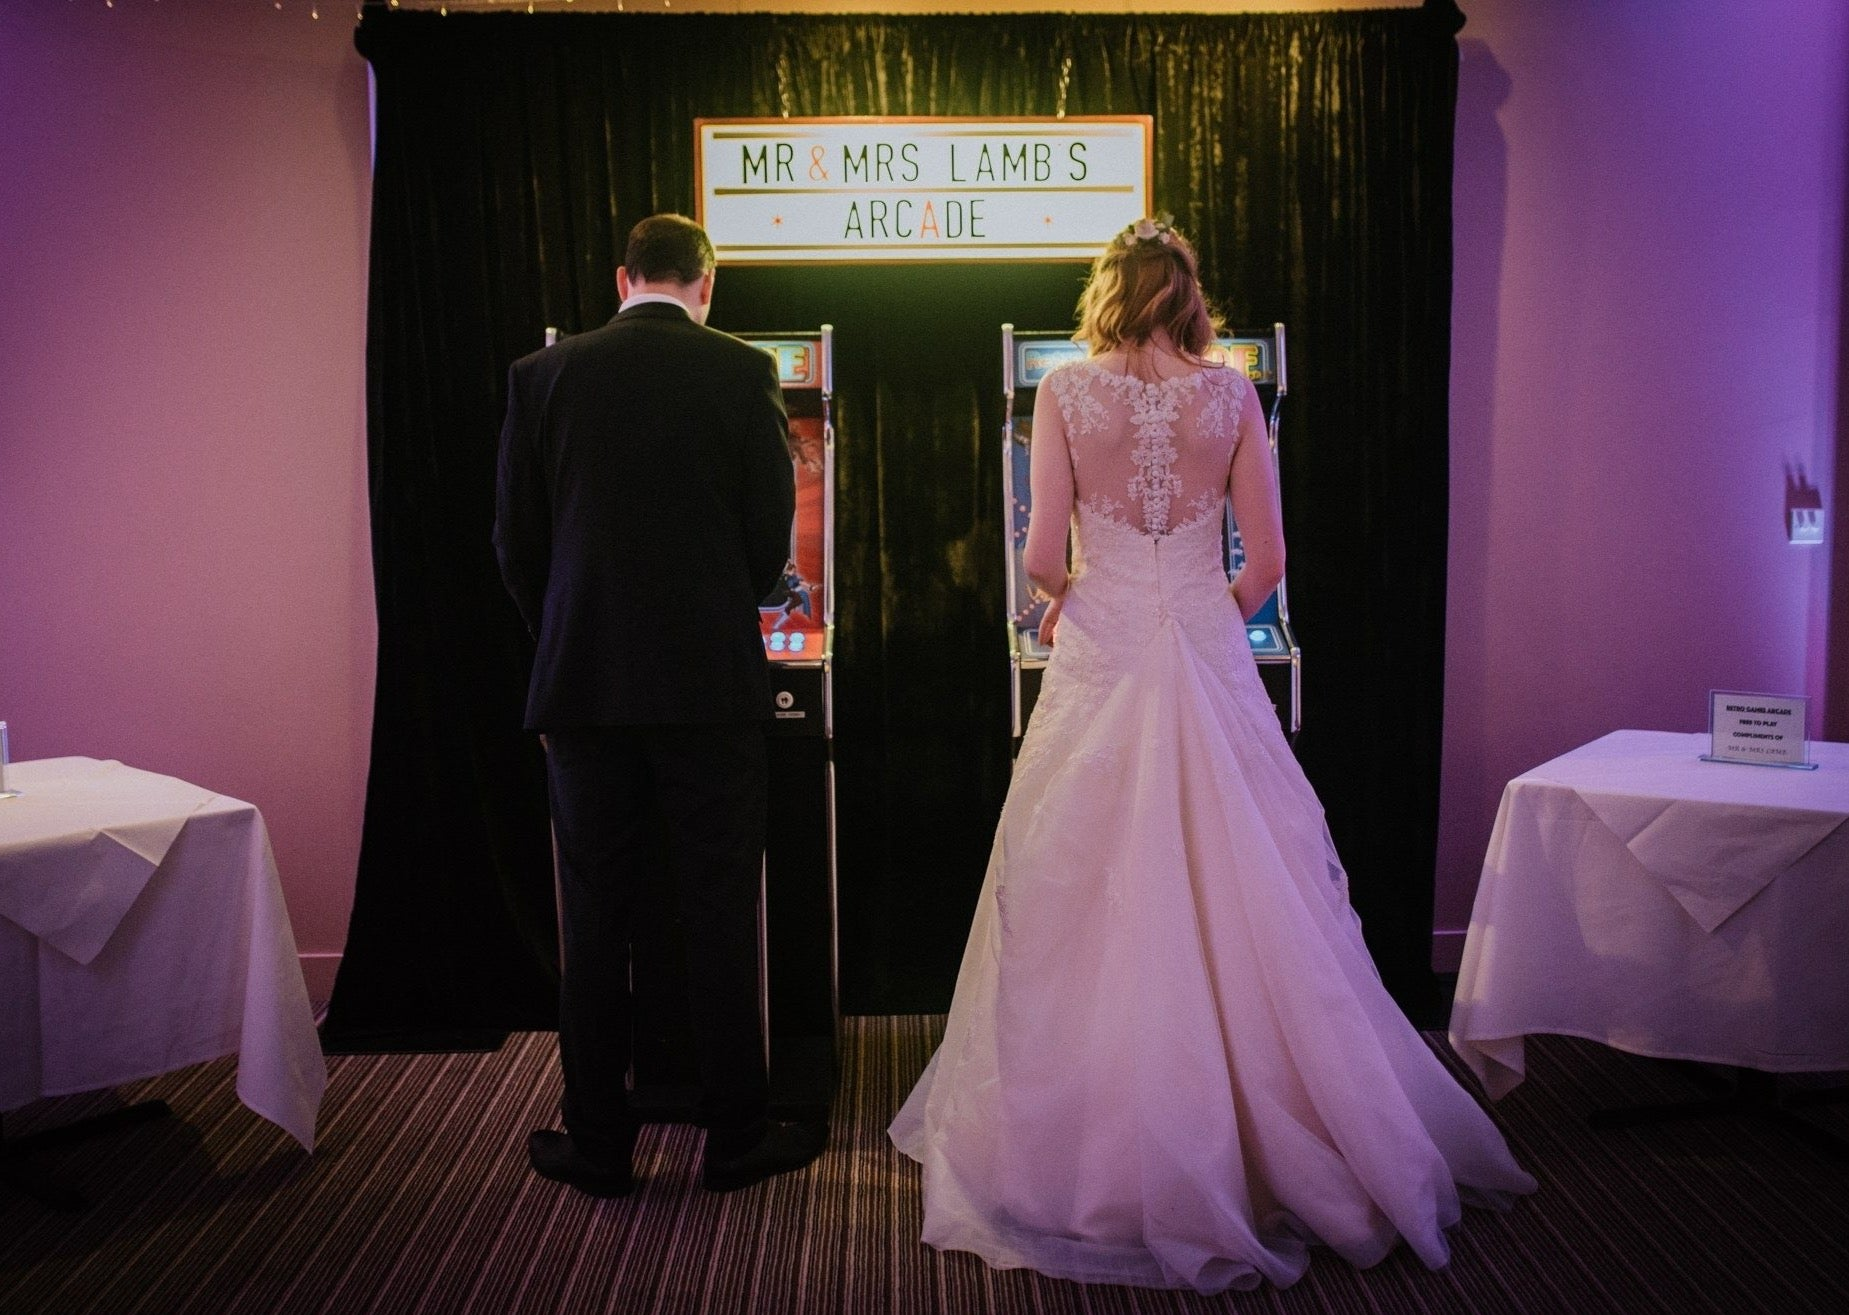 Arcade Games for Weddings